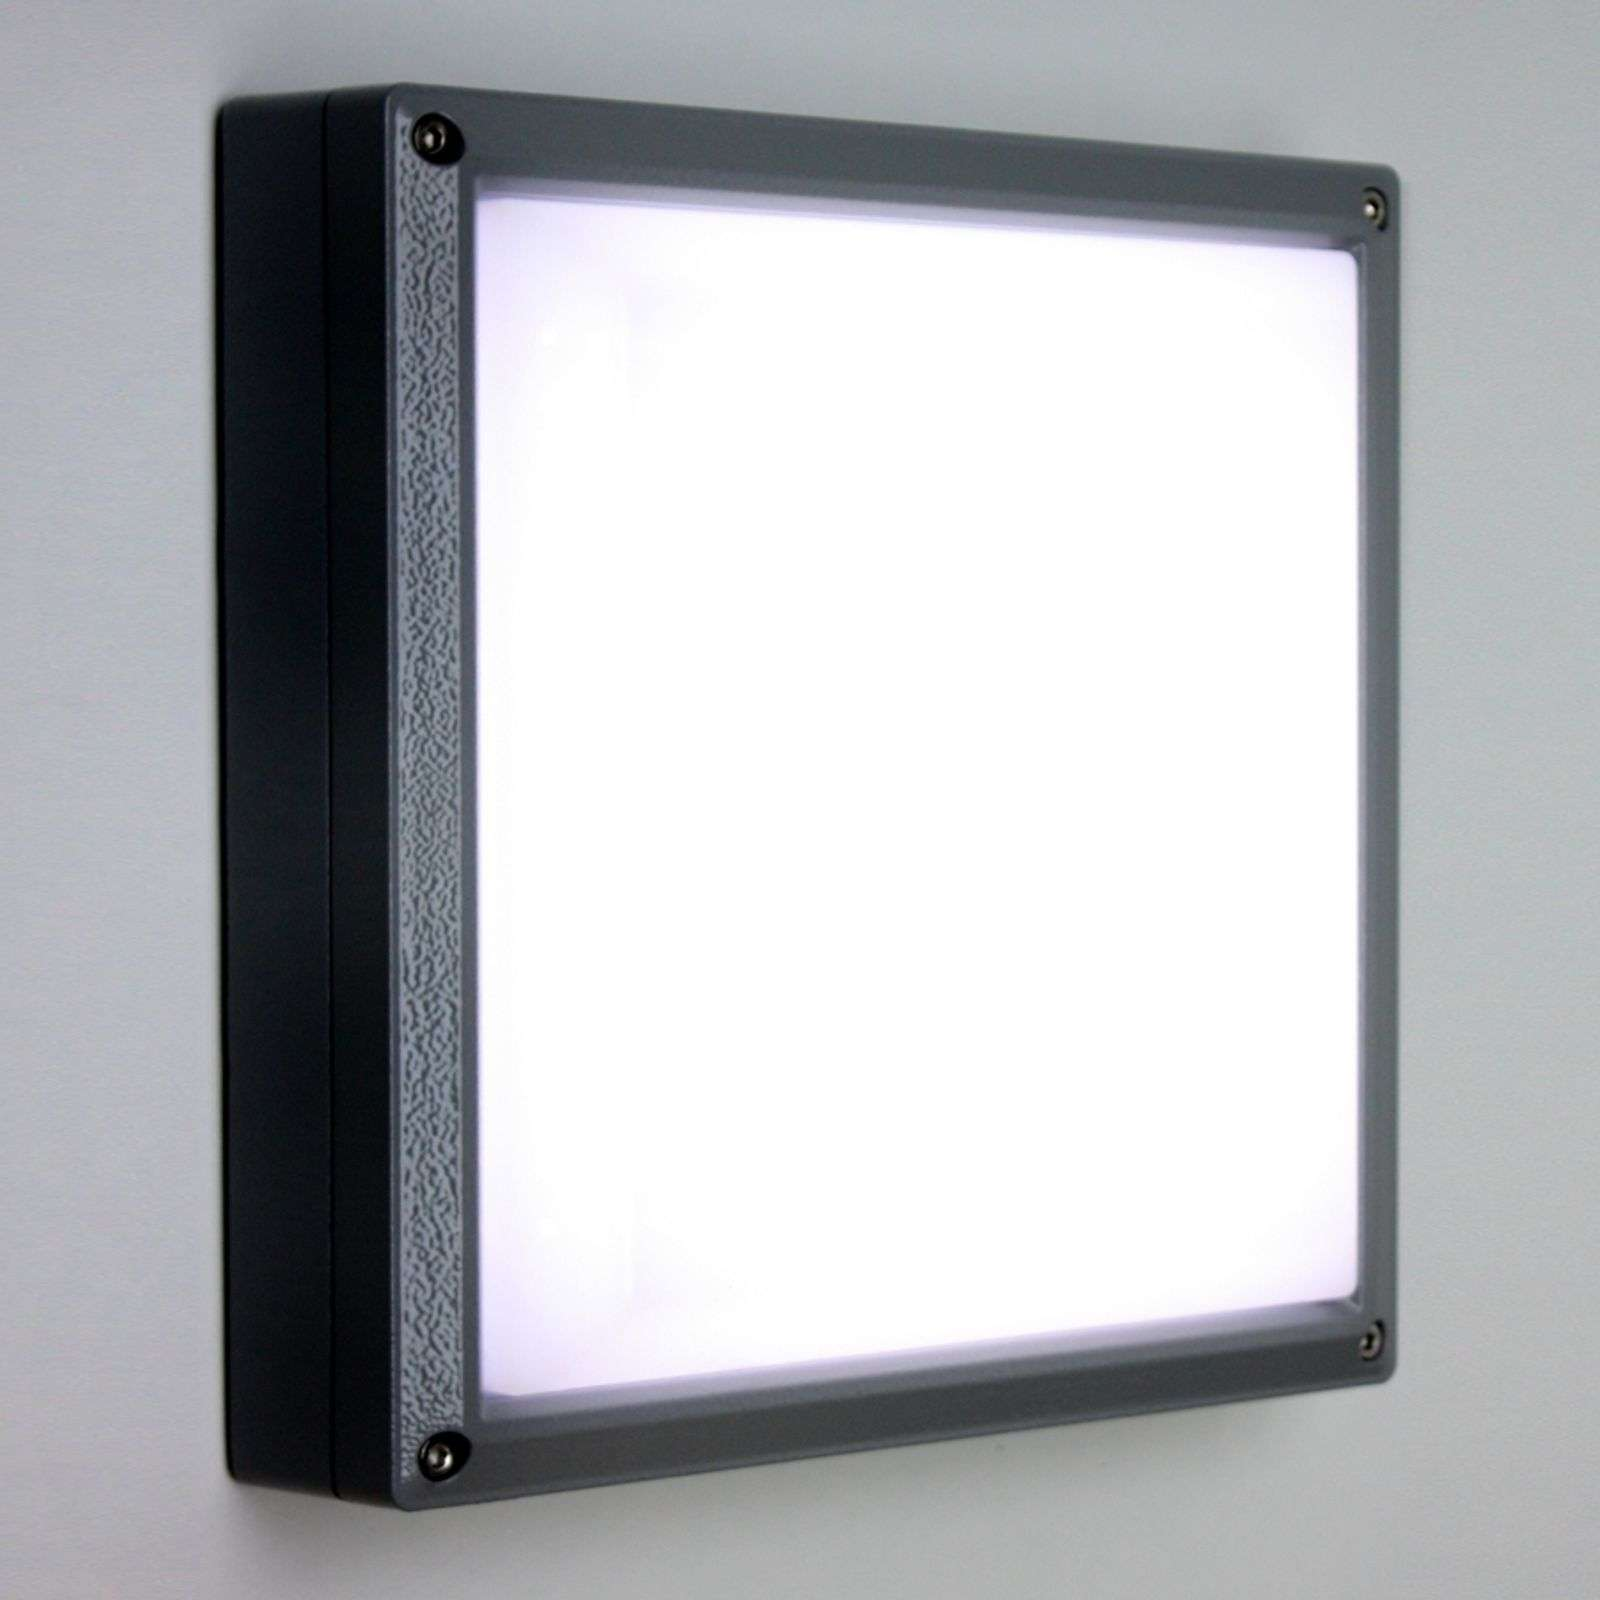 Applique SUN 11 LED 13W anthracite 4 k